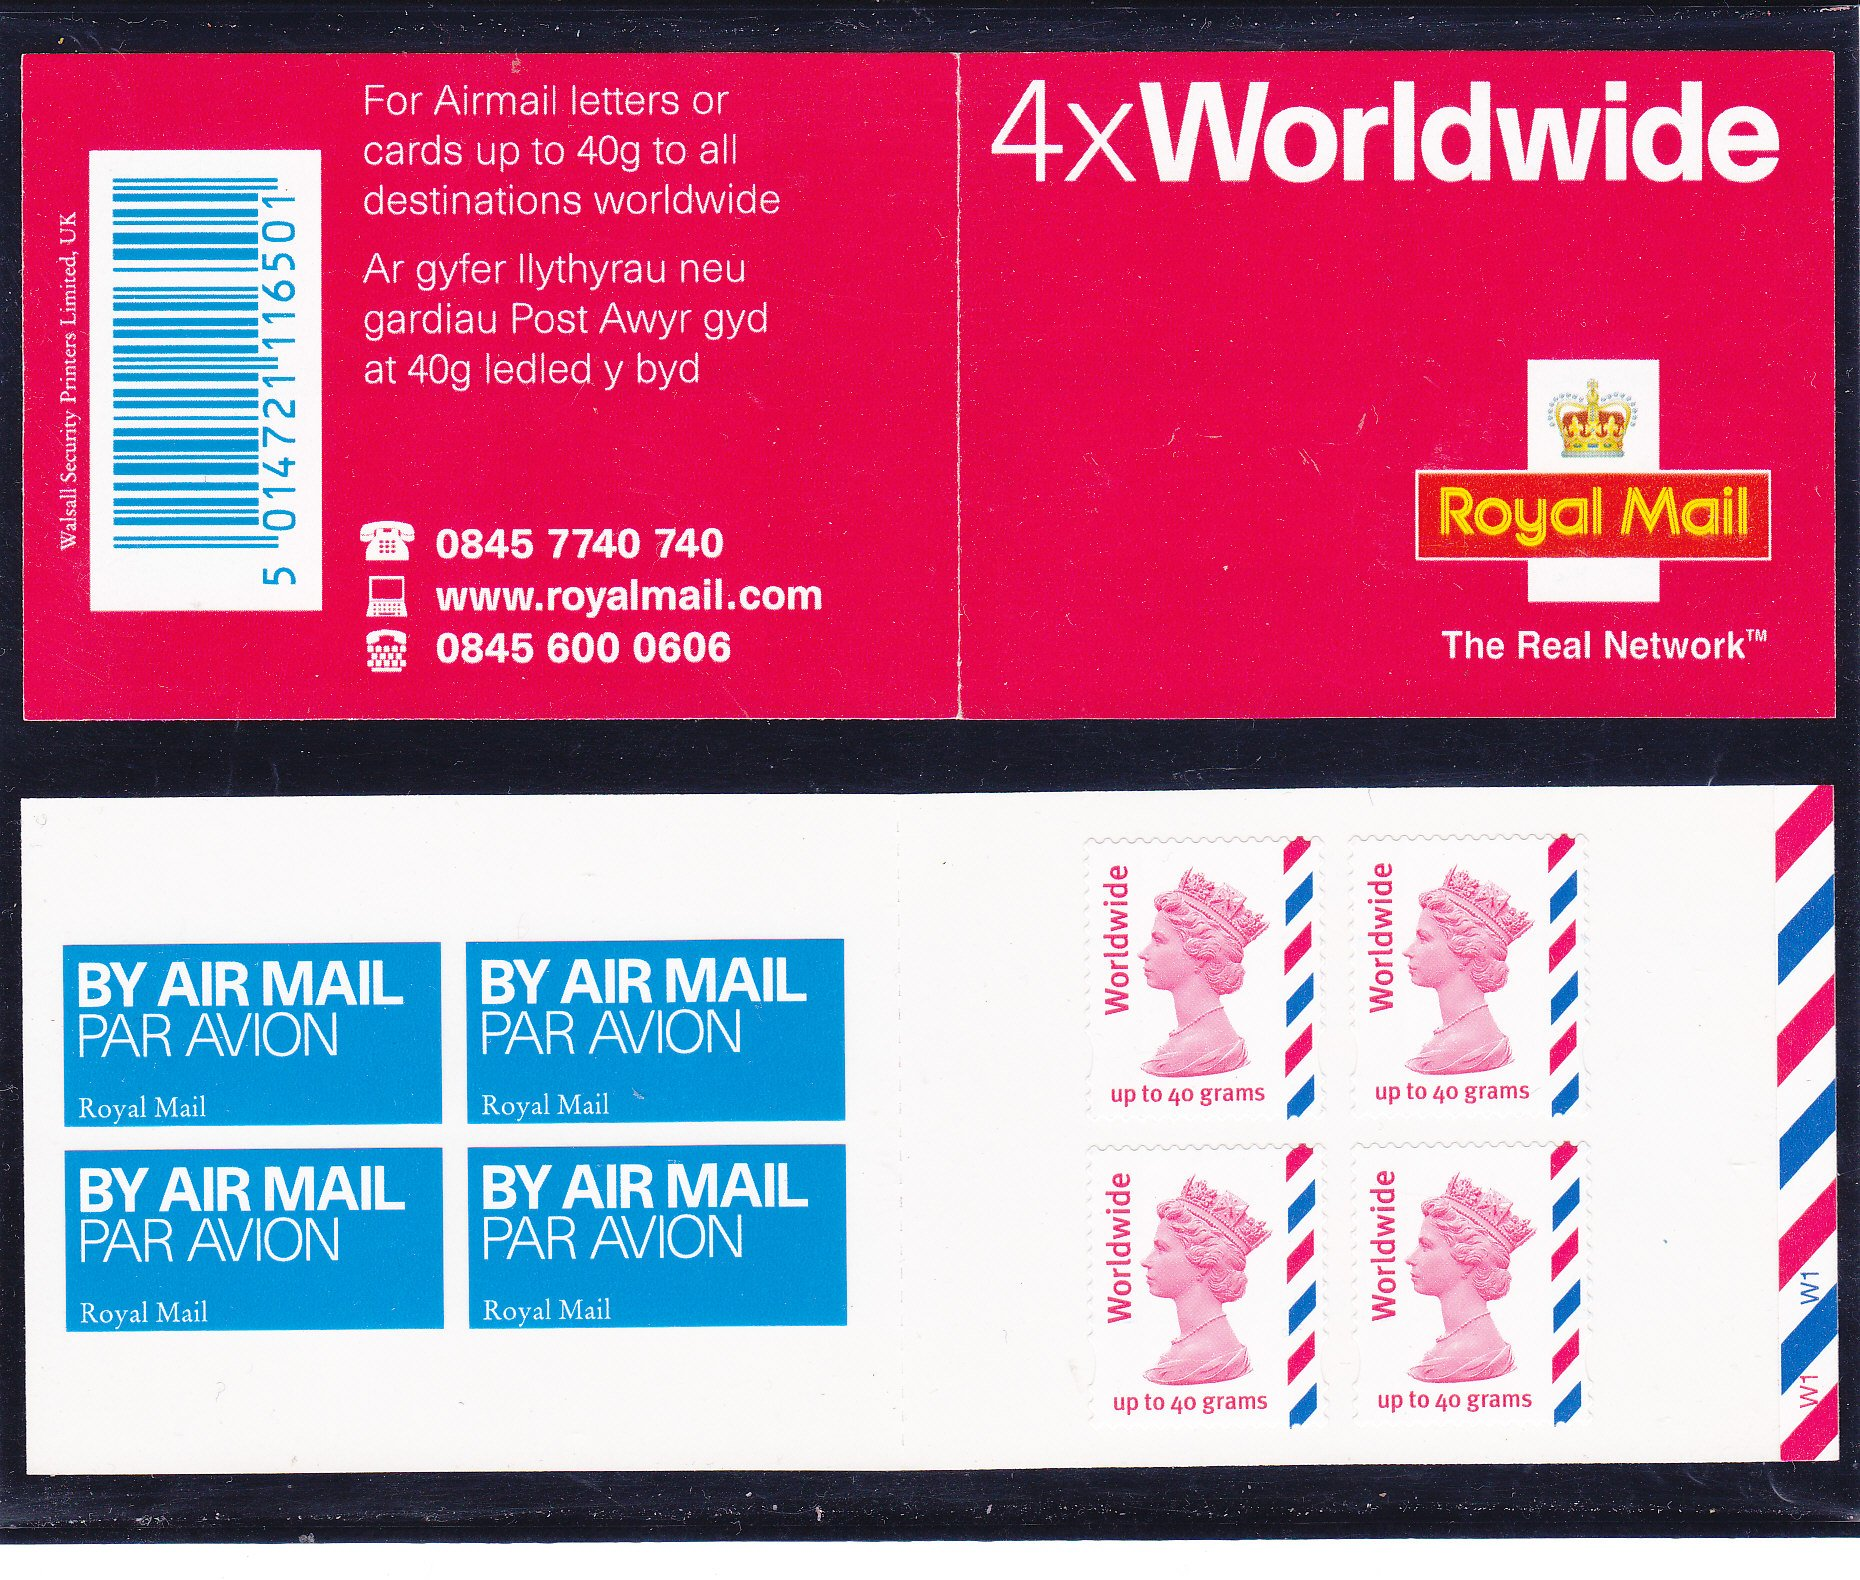 Booklet Airmail MJ1 Worldwide Cyl W1 TRN